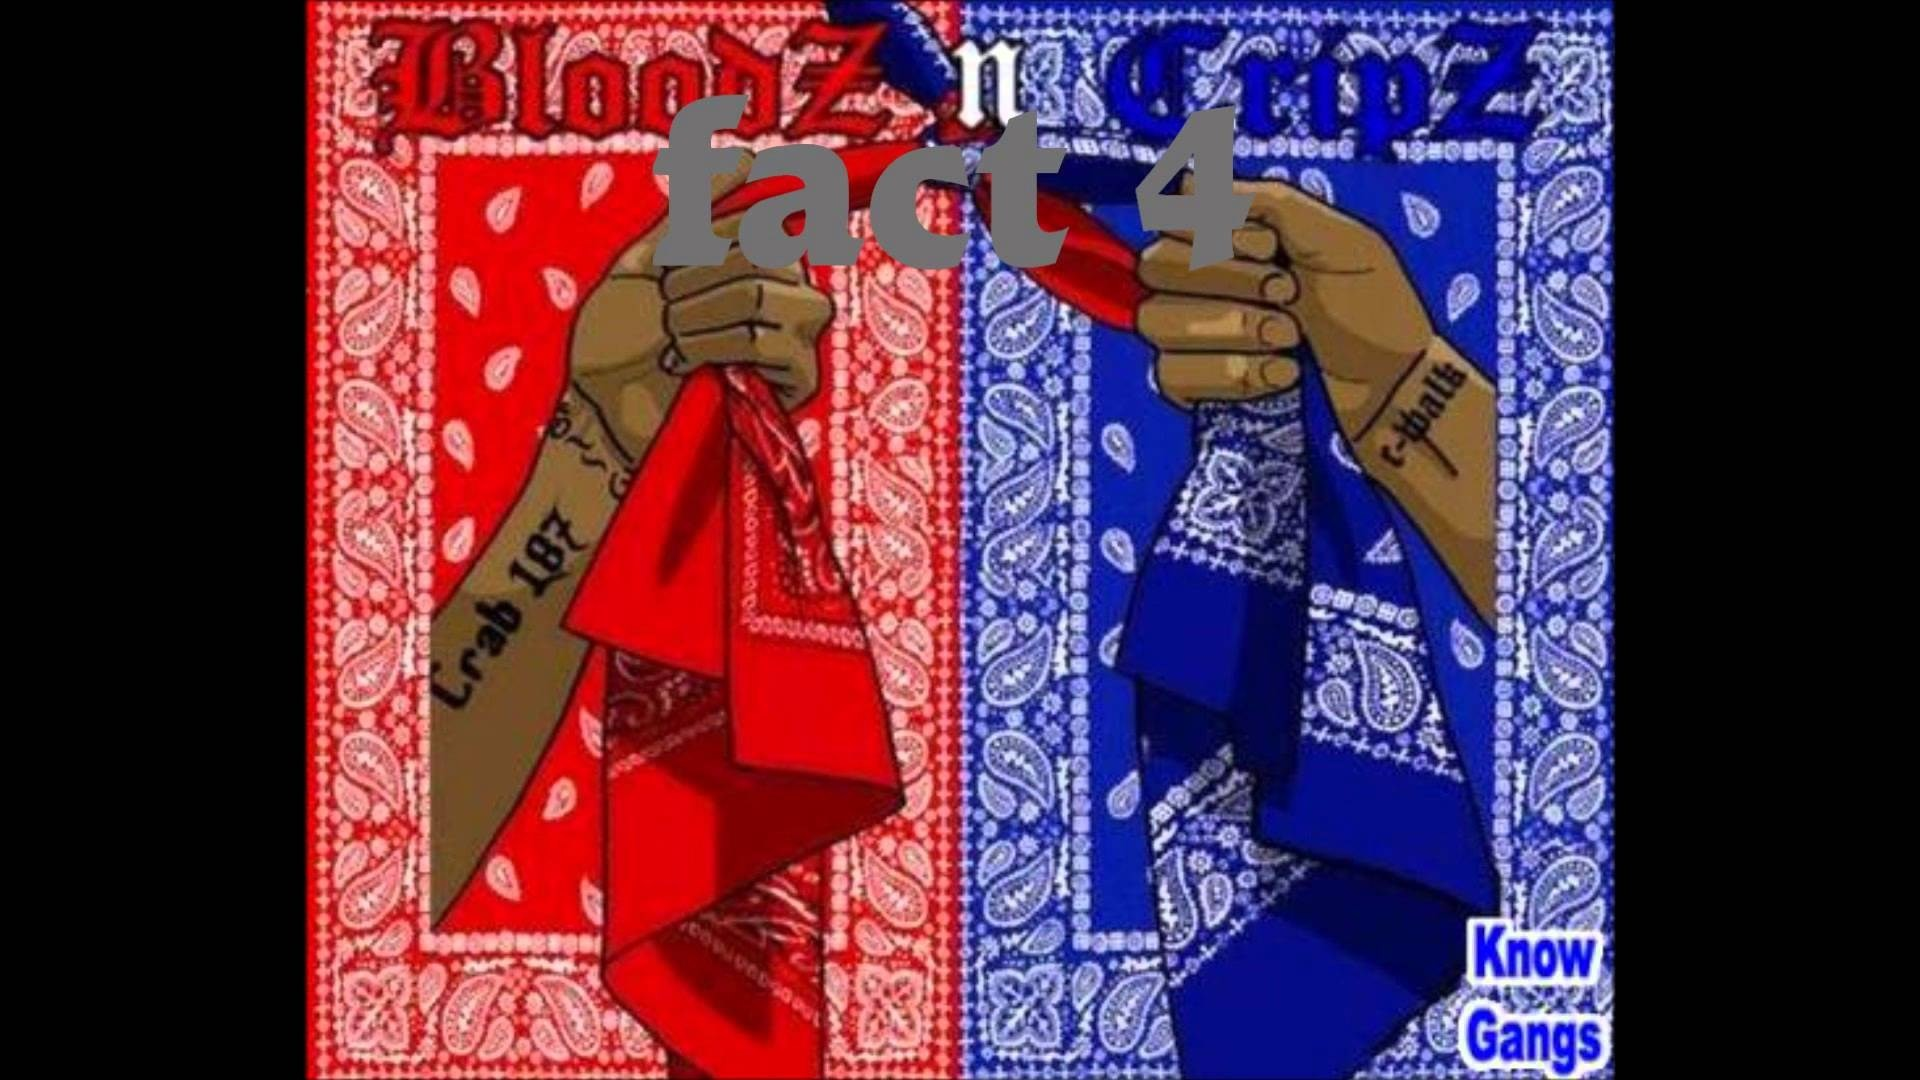 crips and bloods wallpaper